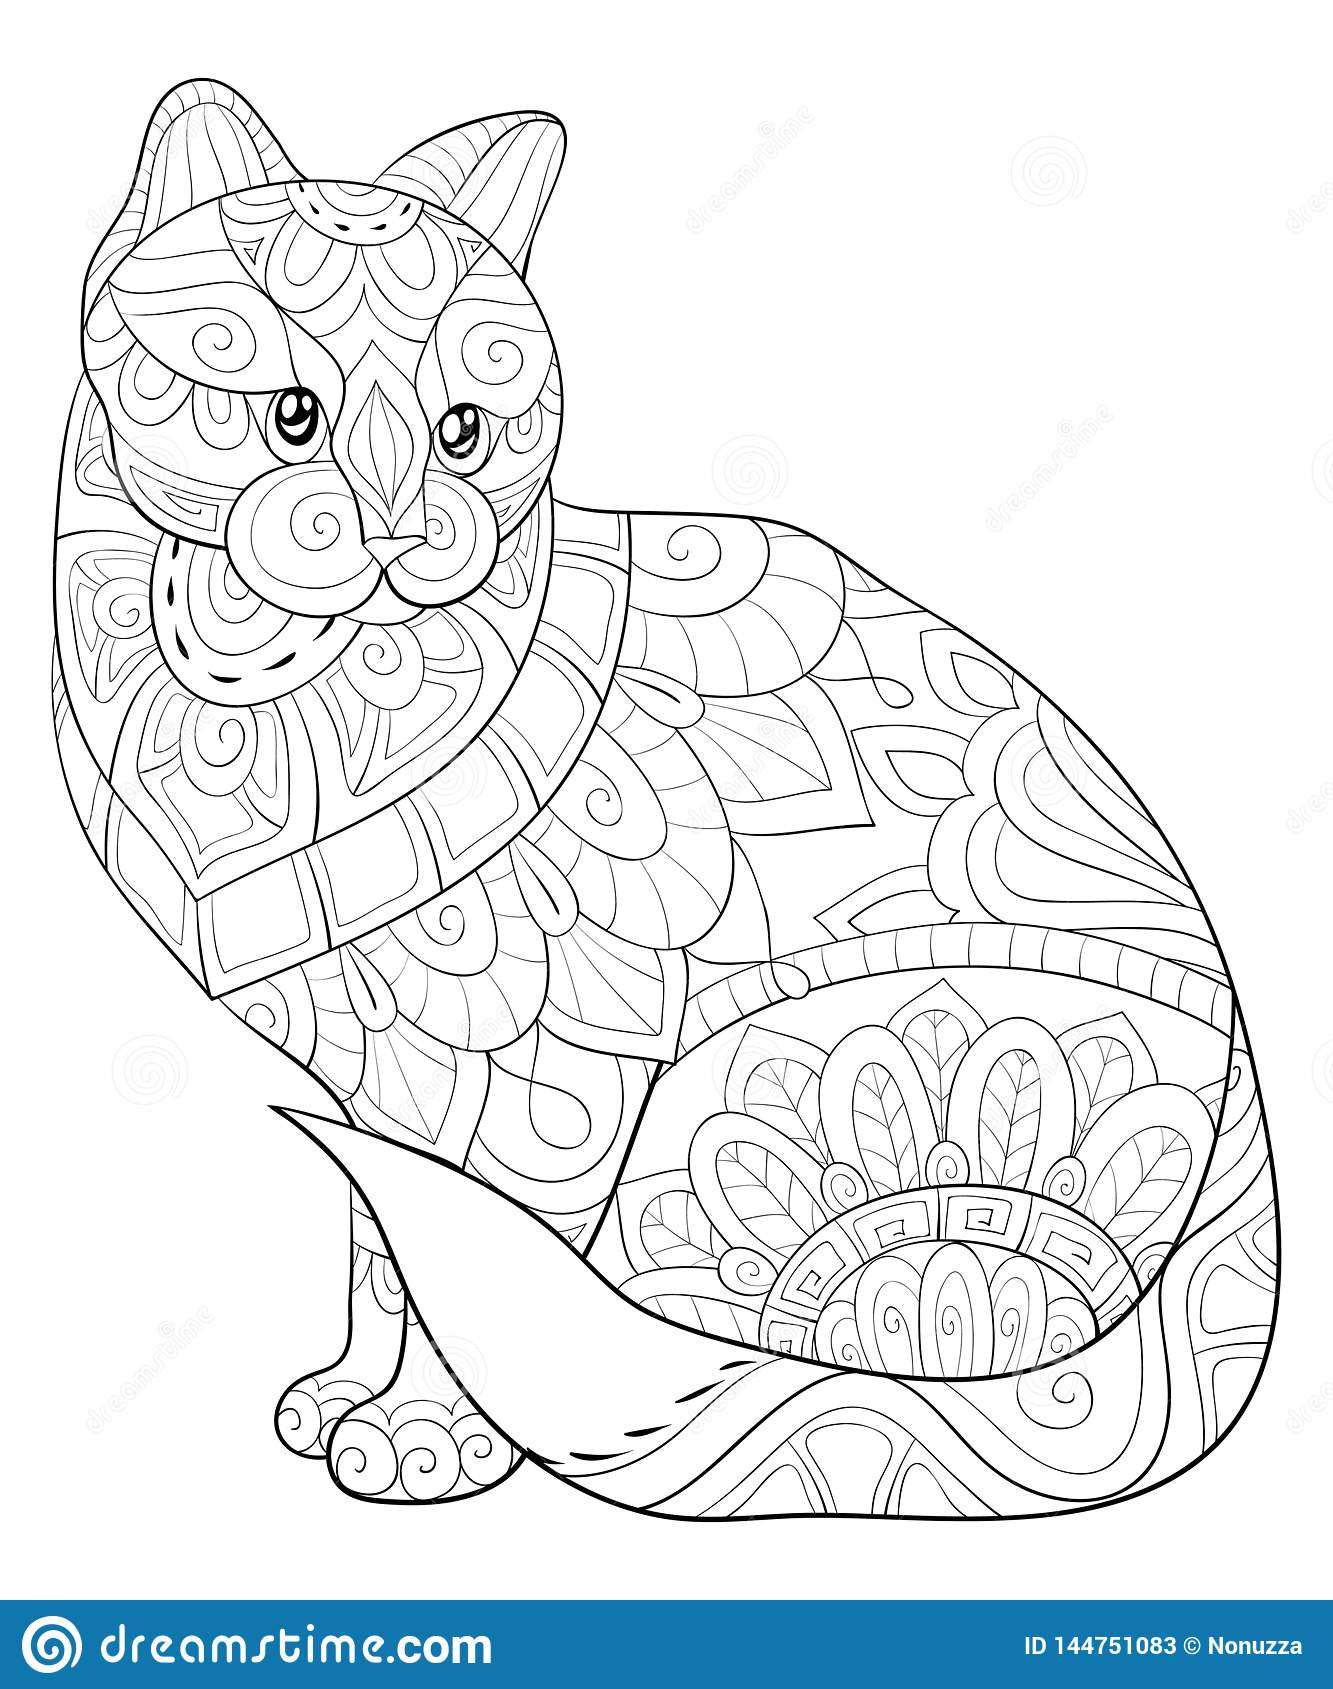 Adult Coloring Book Page A Cute Cat With Ornaments Image For Relaxing Zen Art Style Illustration Stock Vector Illustration Of Elements Mandalas 144751083